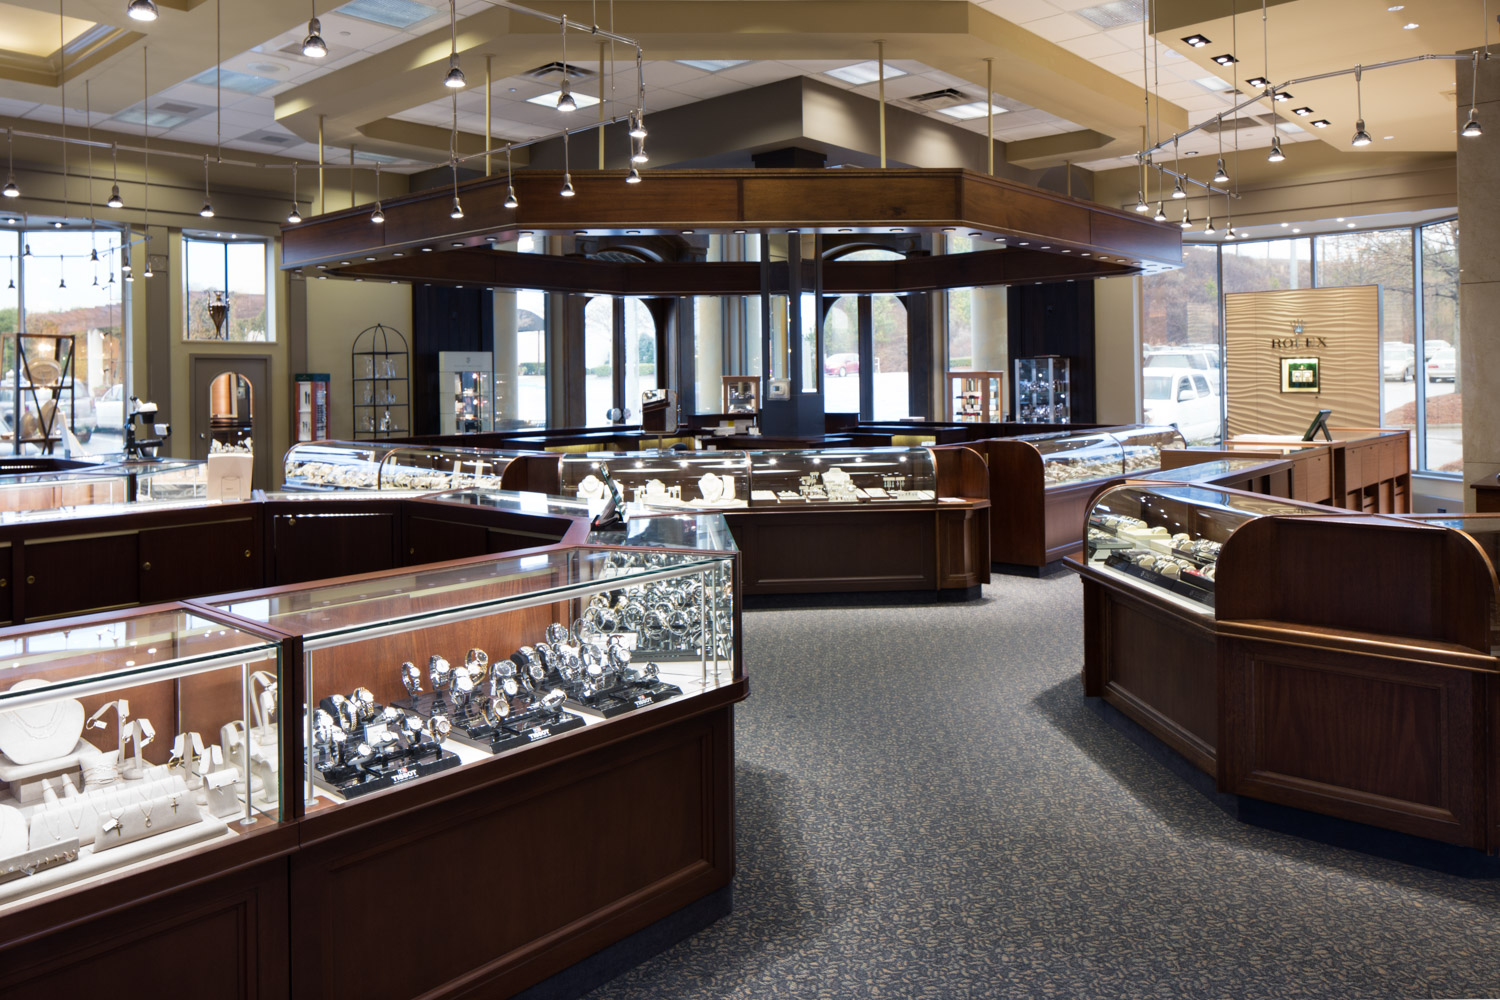 Brombergs - Birmingham AL Jewelry Store - Google Virtual Tour2516.jpg